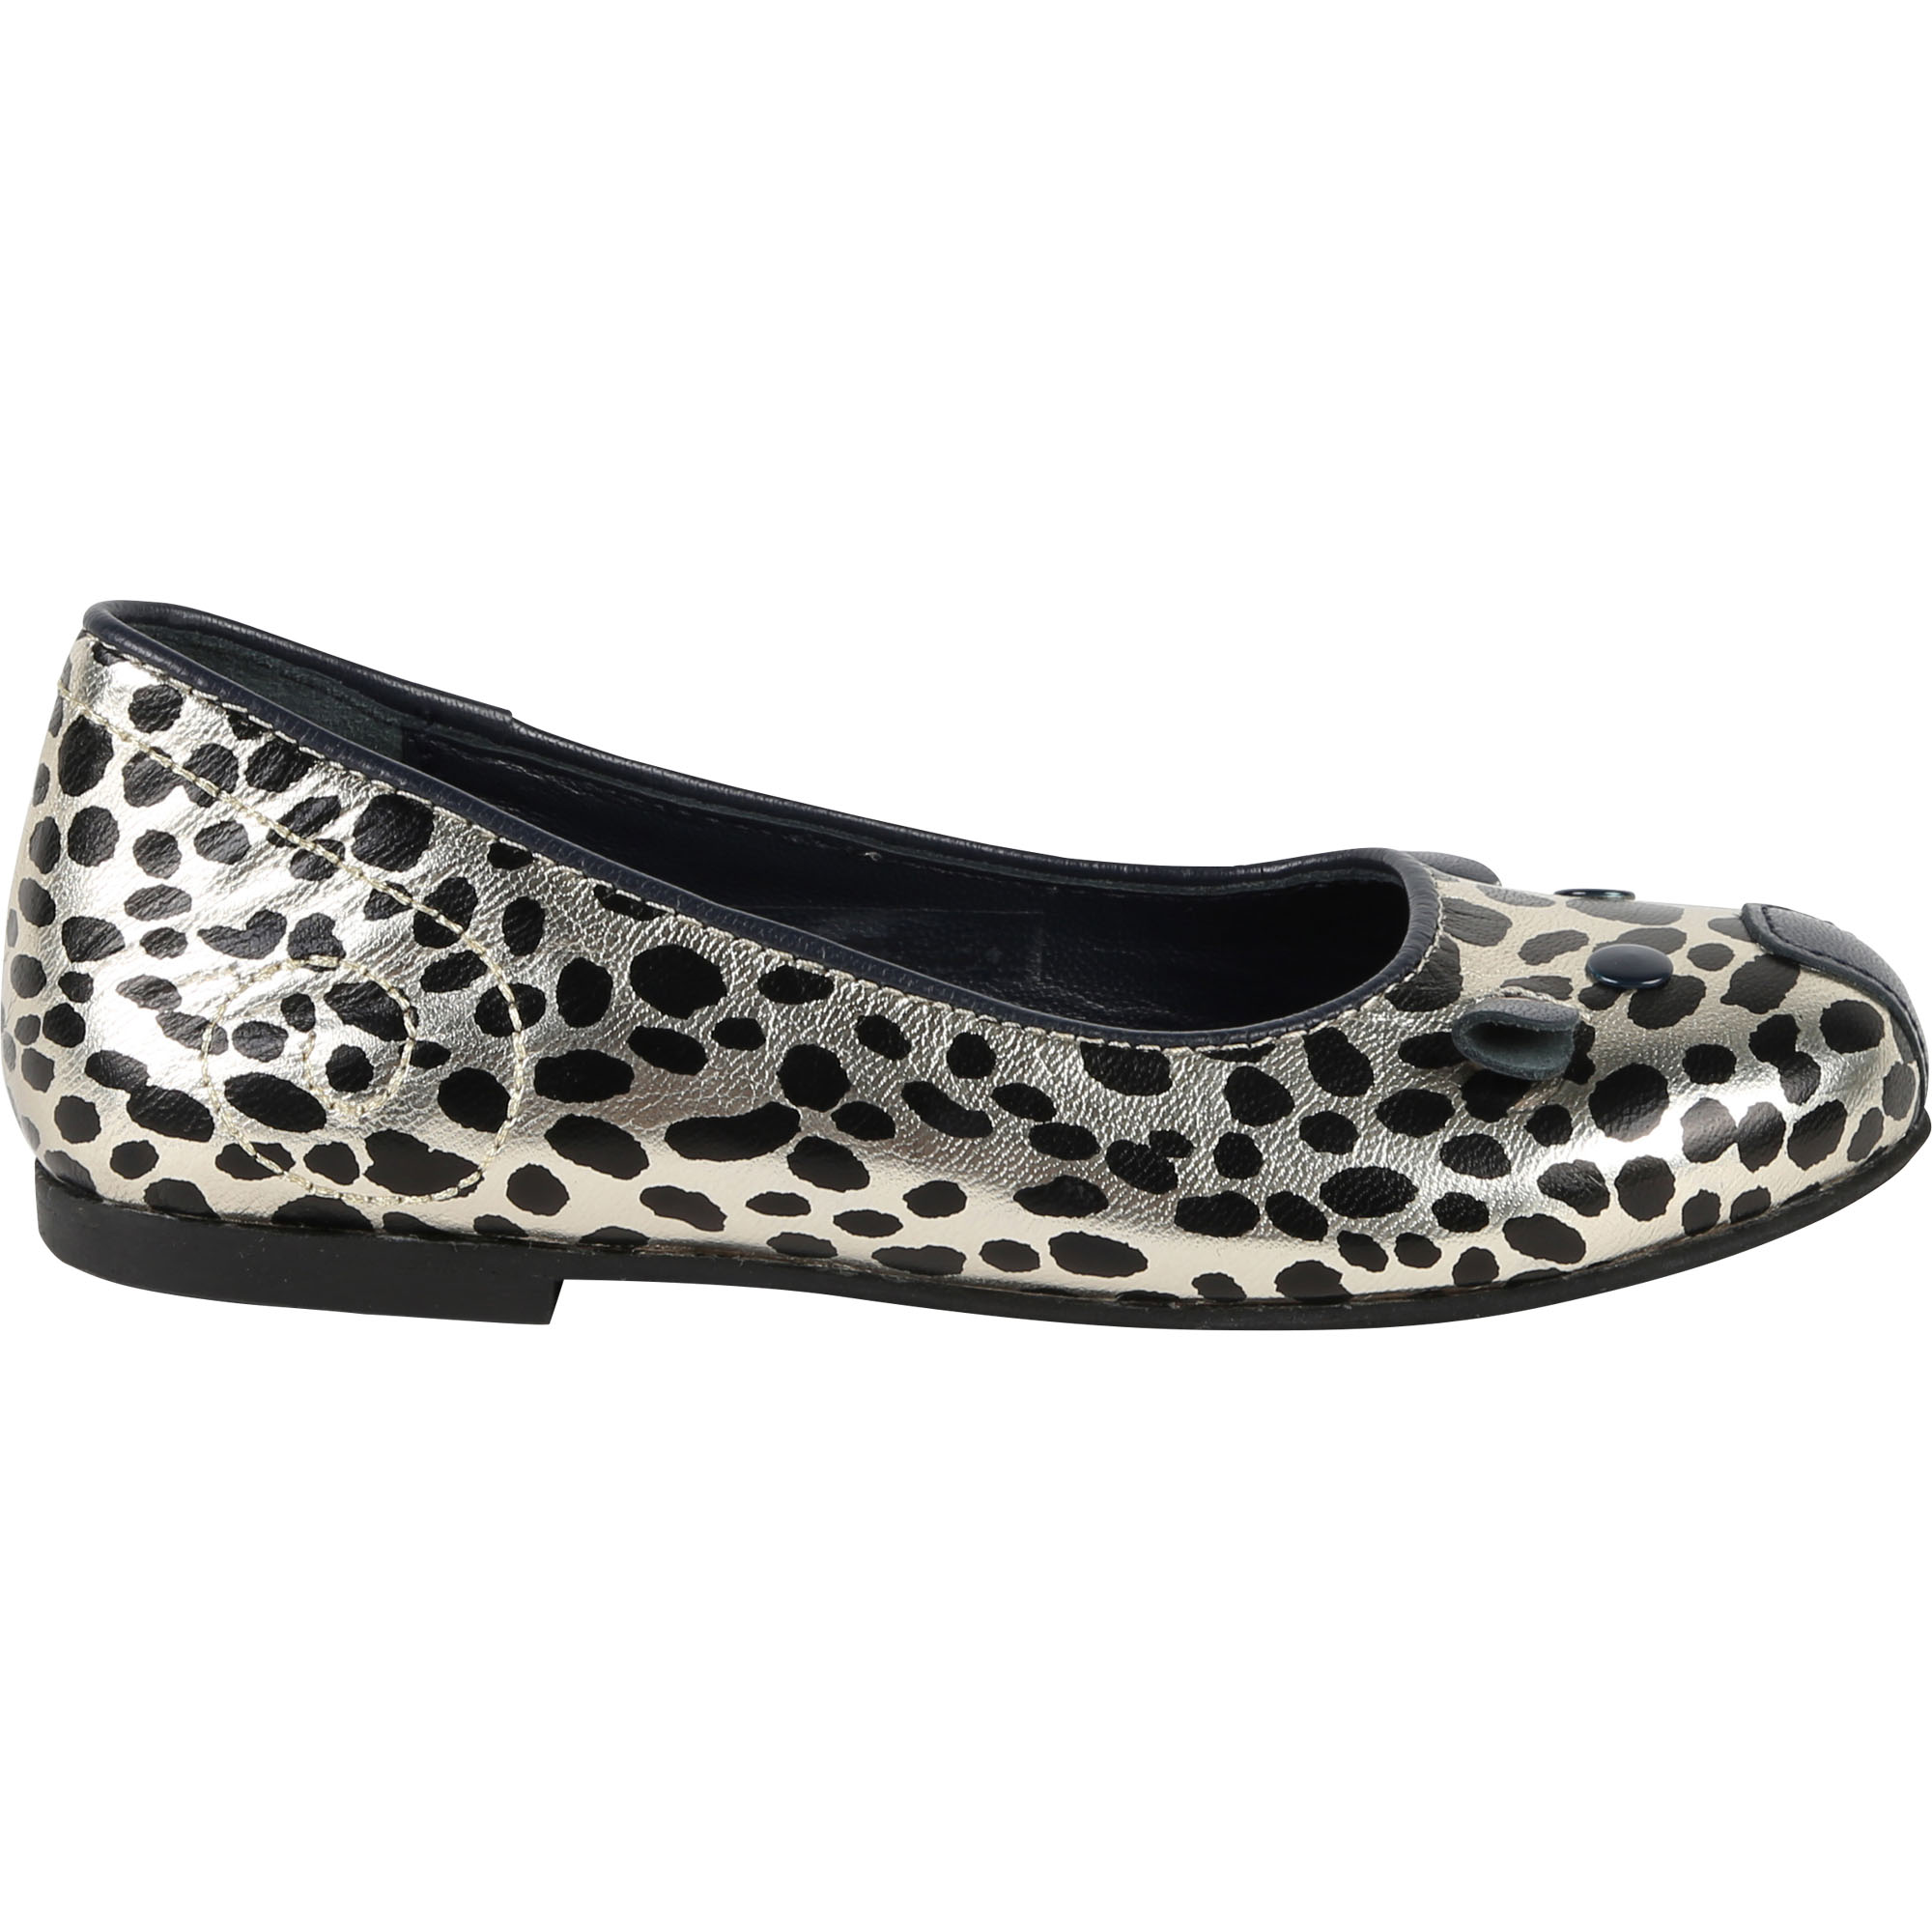 Leopard print ballet flats LITTLE MARC JACOBS for GIRL